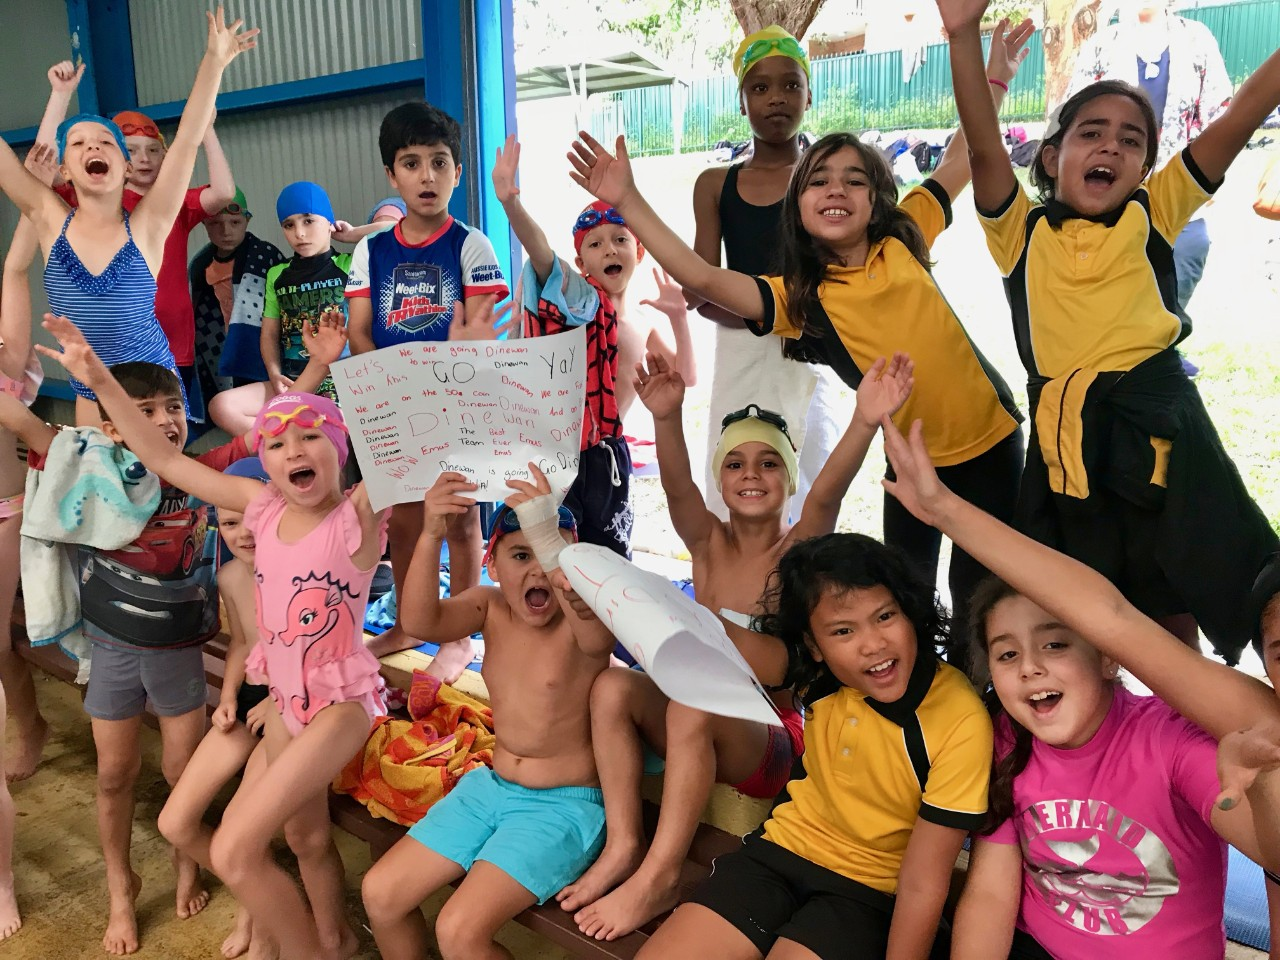 Students cheering and supporting one another at the school swimming carnival.